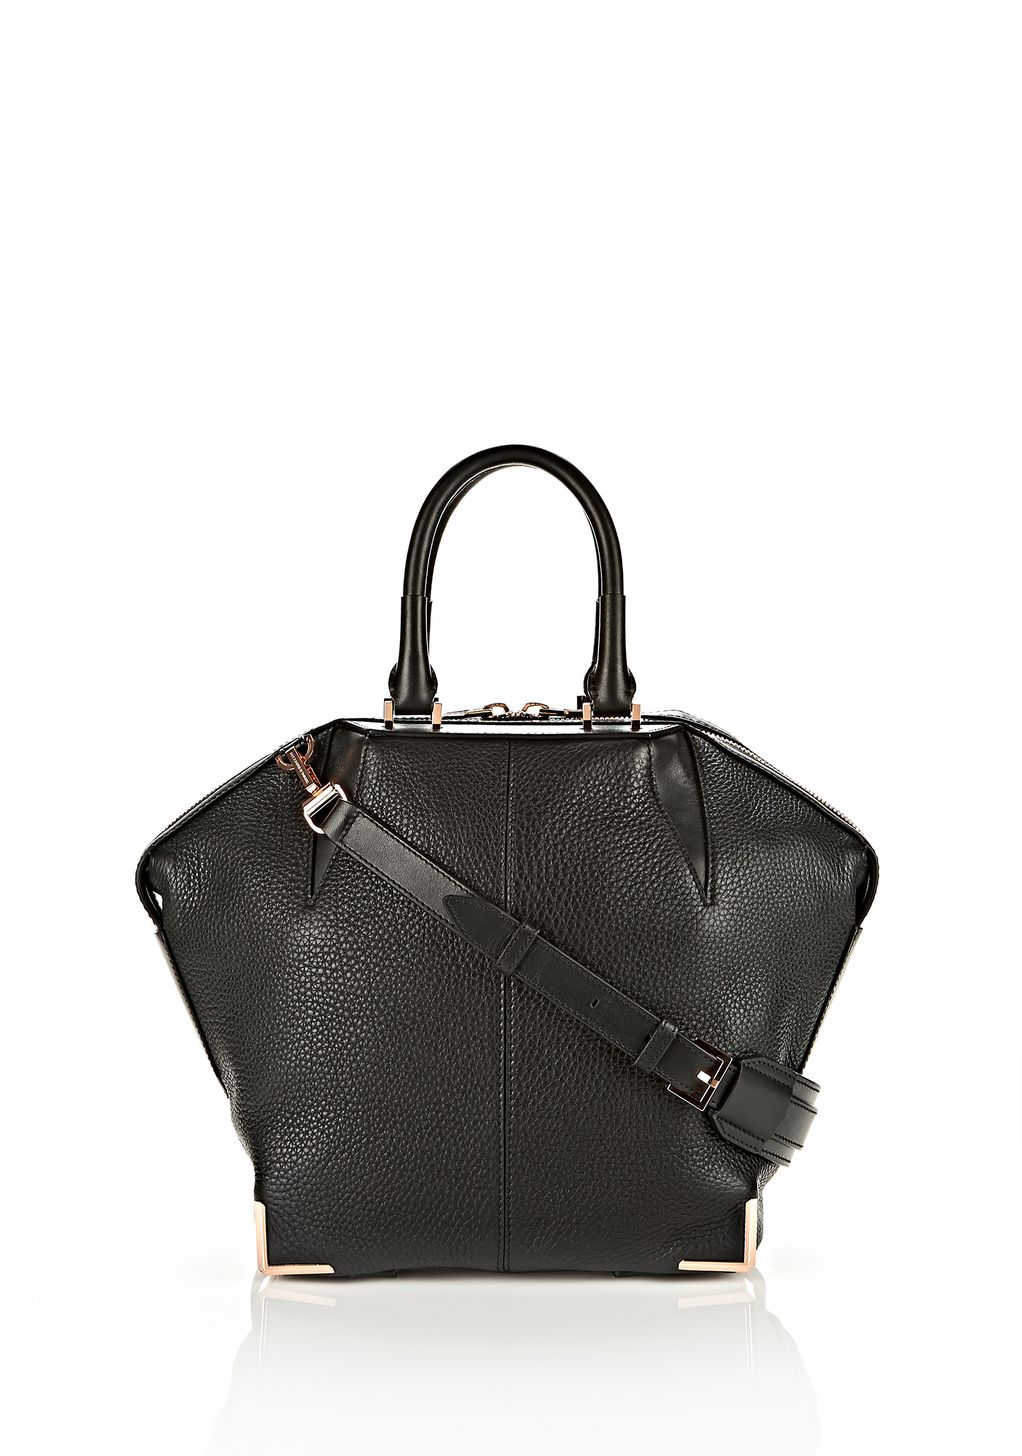 Alexander Small Emile In Soft Black With Rose Gold Shoulder Bag Official Site